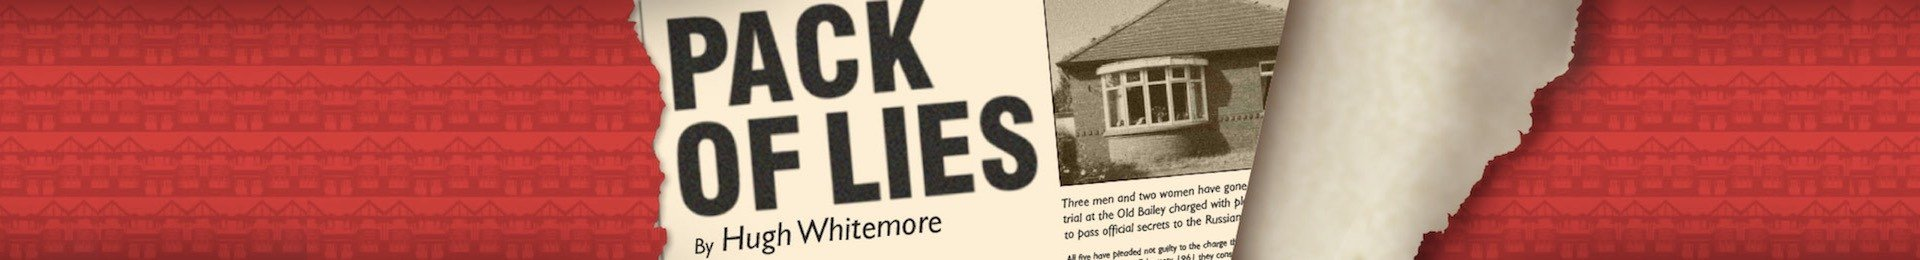 Pack of Lies banner image